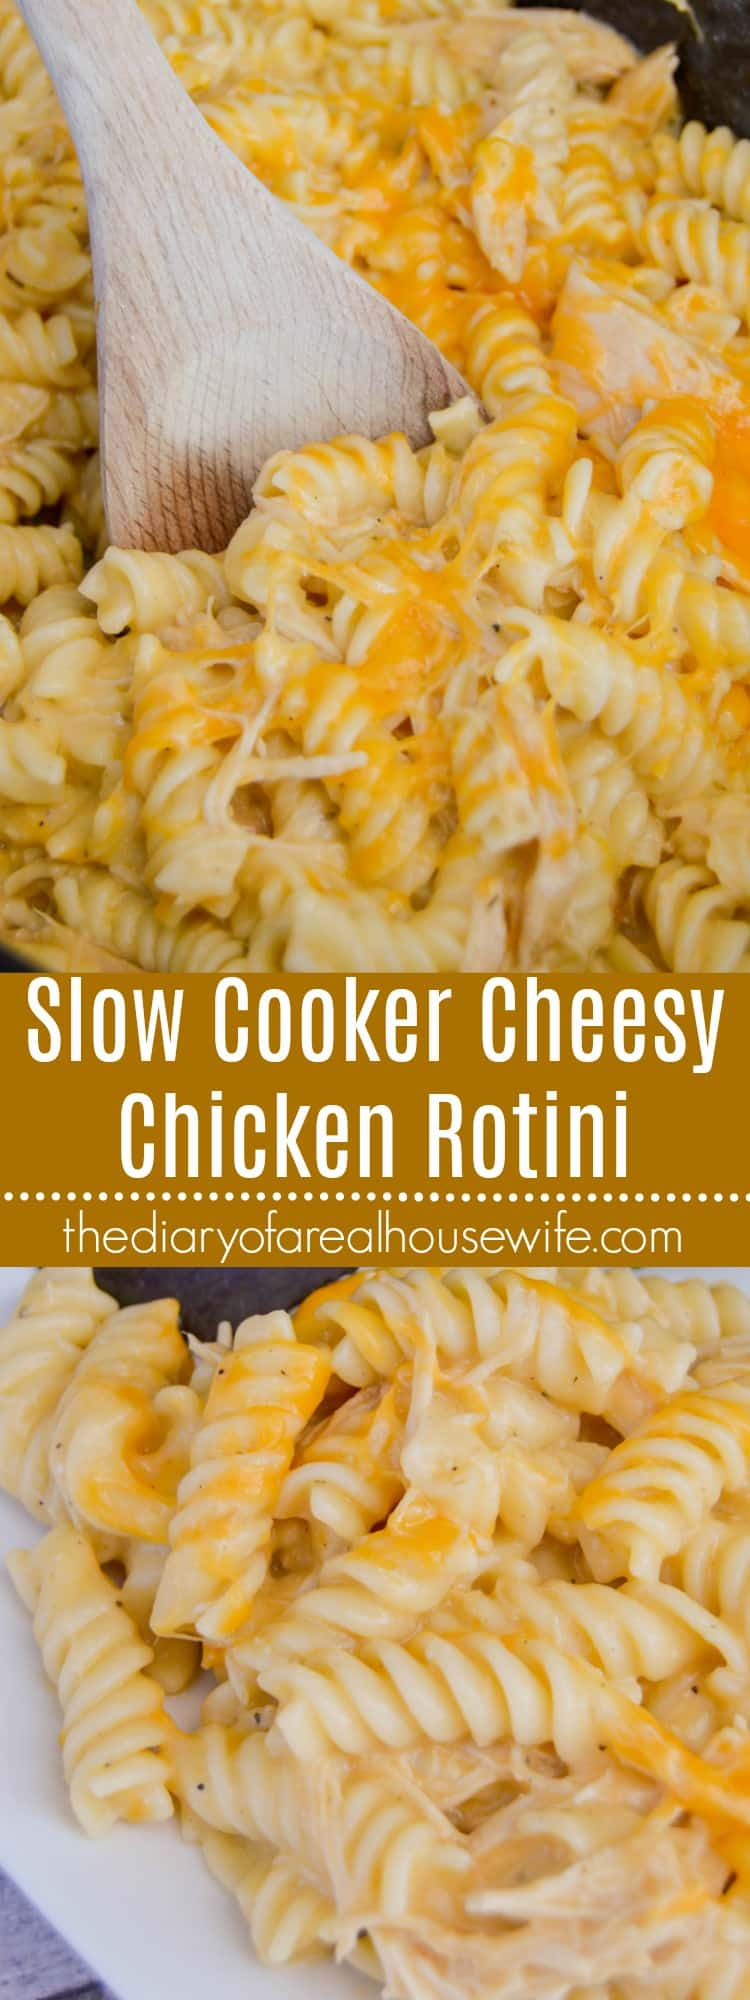 Kitchen Craft Slow Cooker Recipes